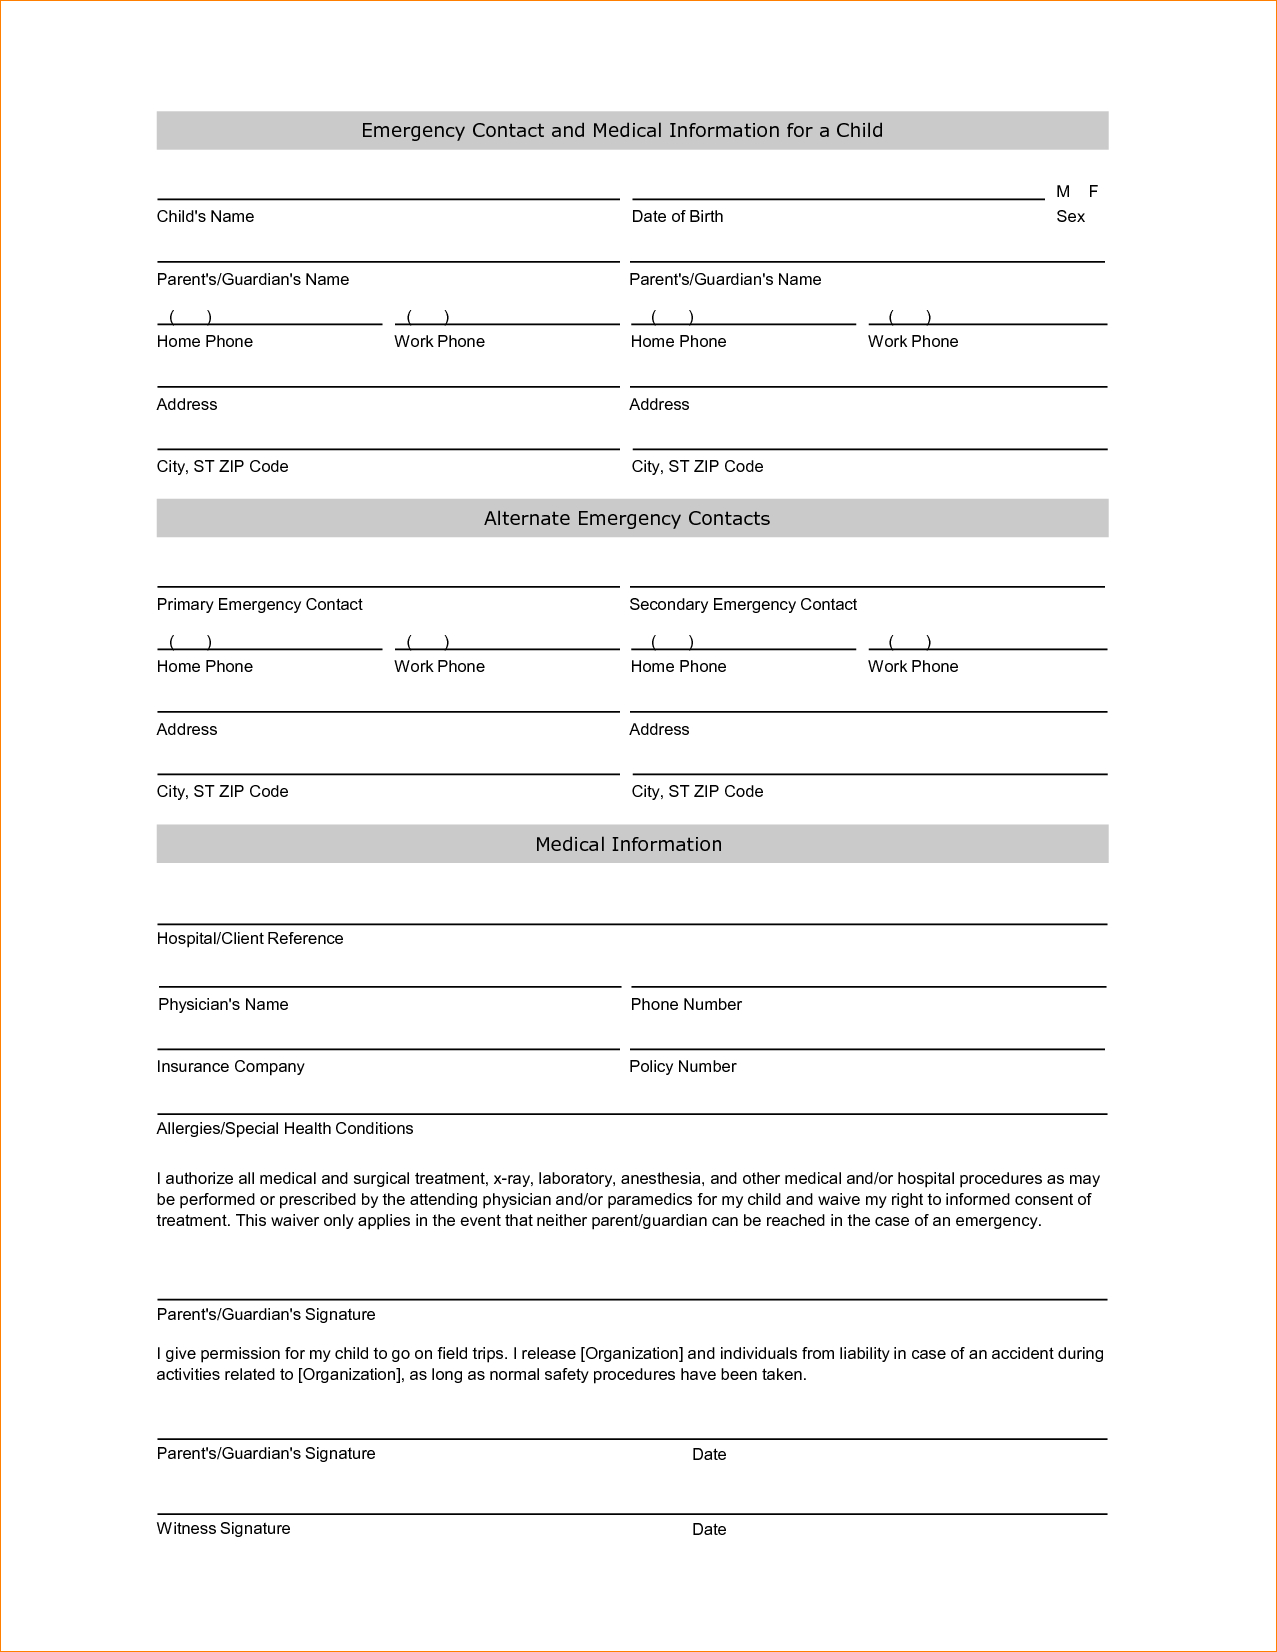 008 Emergency Contact Form Template Ideas Wondrous Card Travel Free - Free Printable Emergency Medical Card